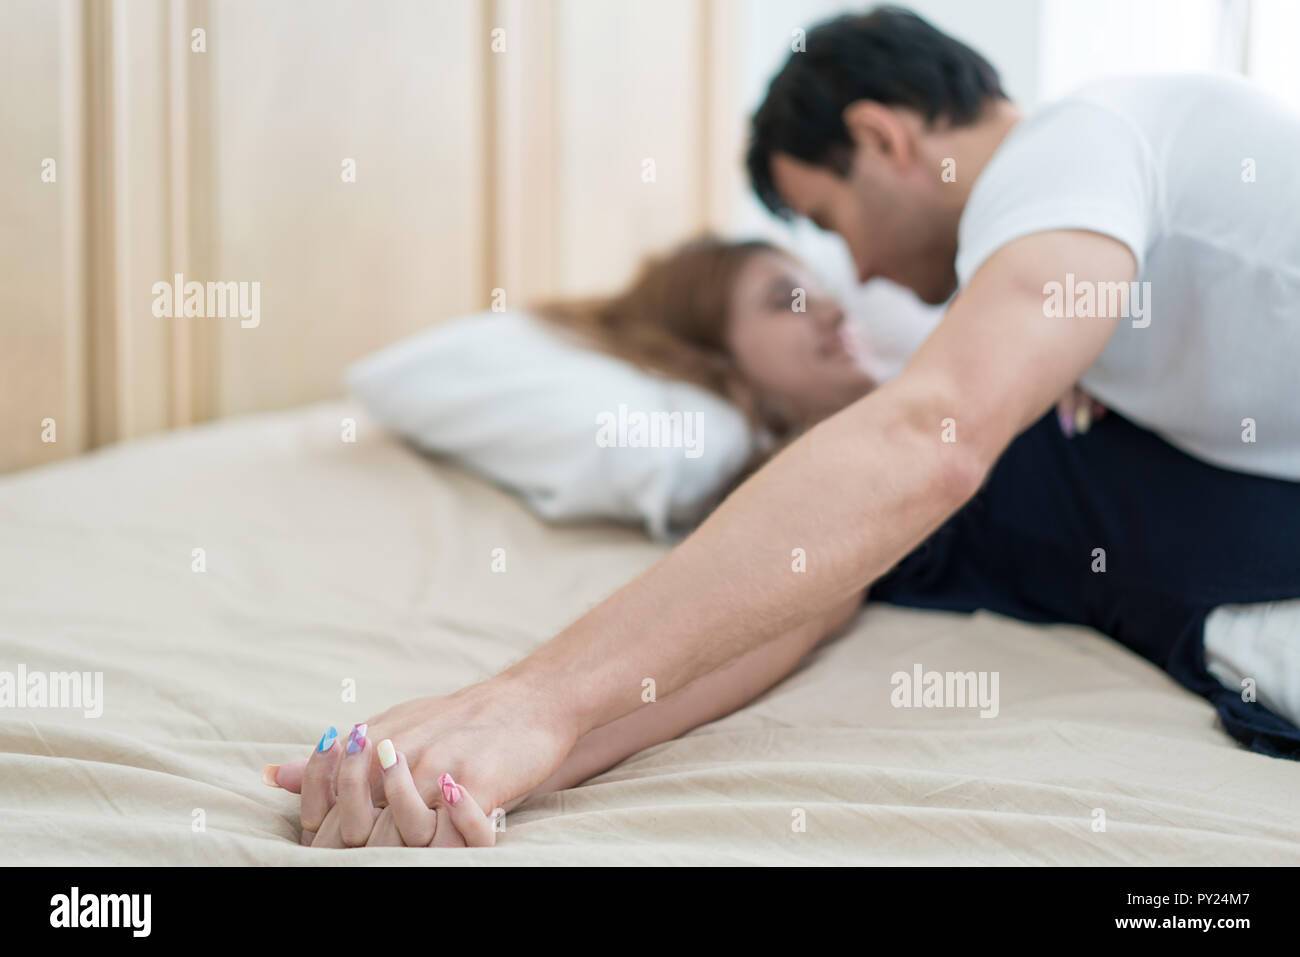 Young Love Couple In Bed Romantic Scene In Bedroom Sensual Lovers Making Love In Bedroom Stock Photo Alamy